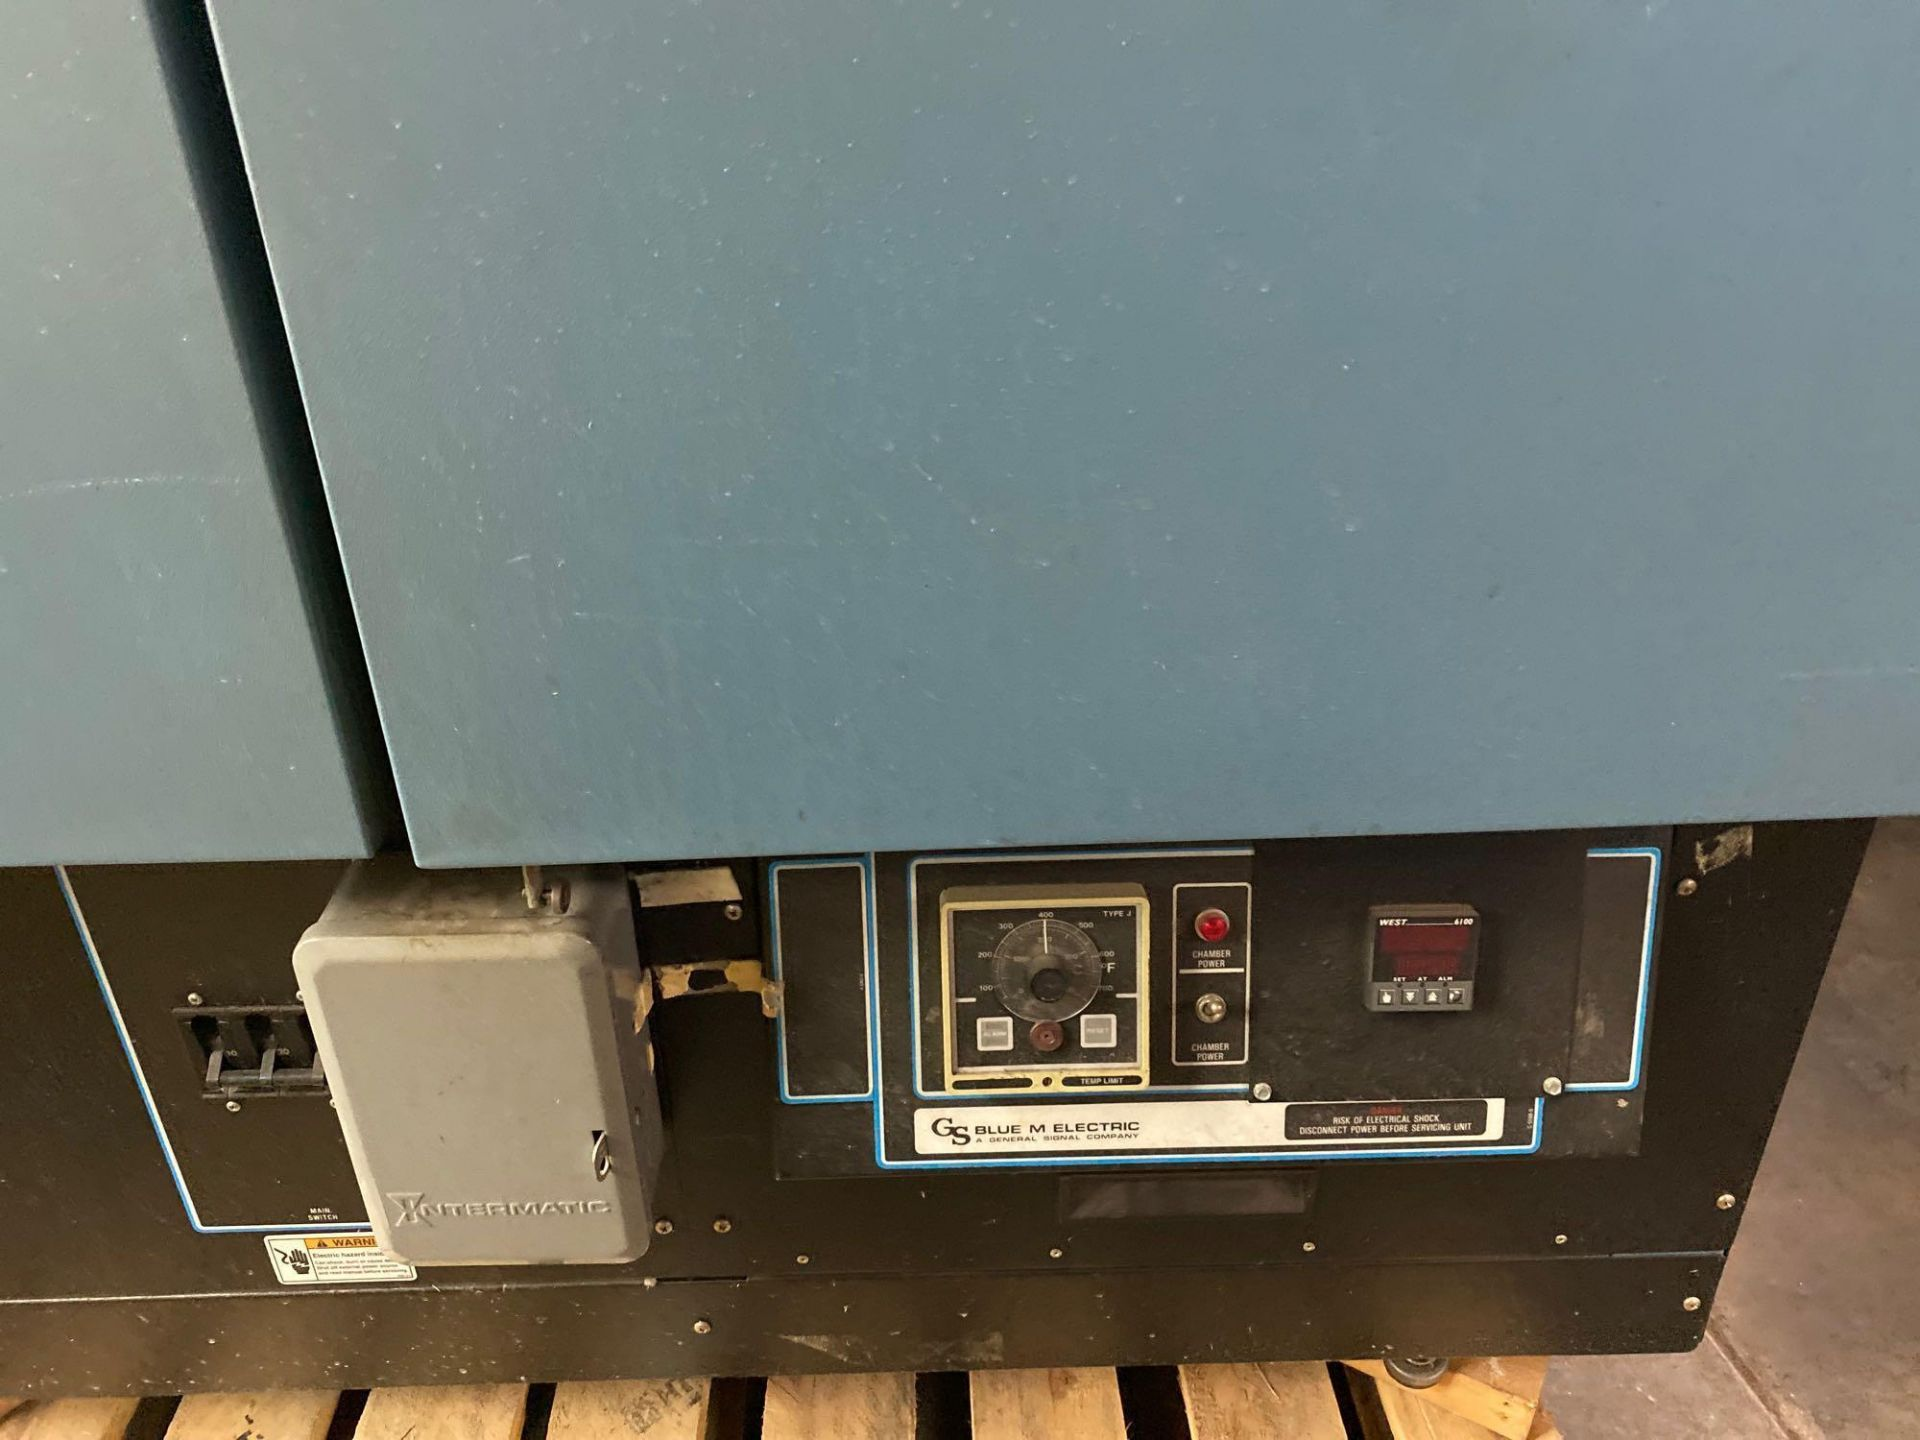 Blue M Electric Lab Oven - Image 3 of 16